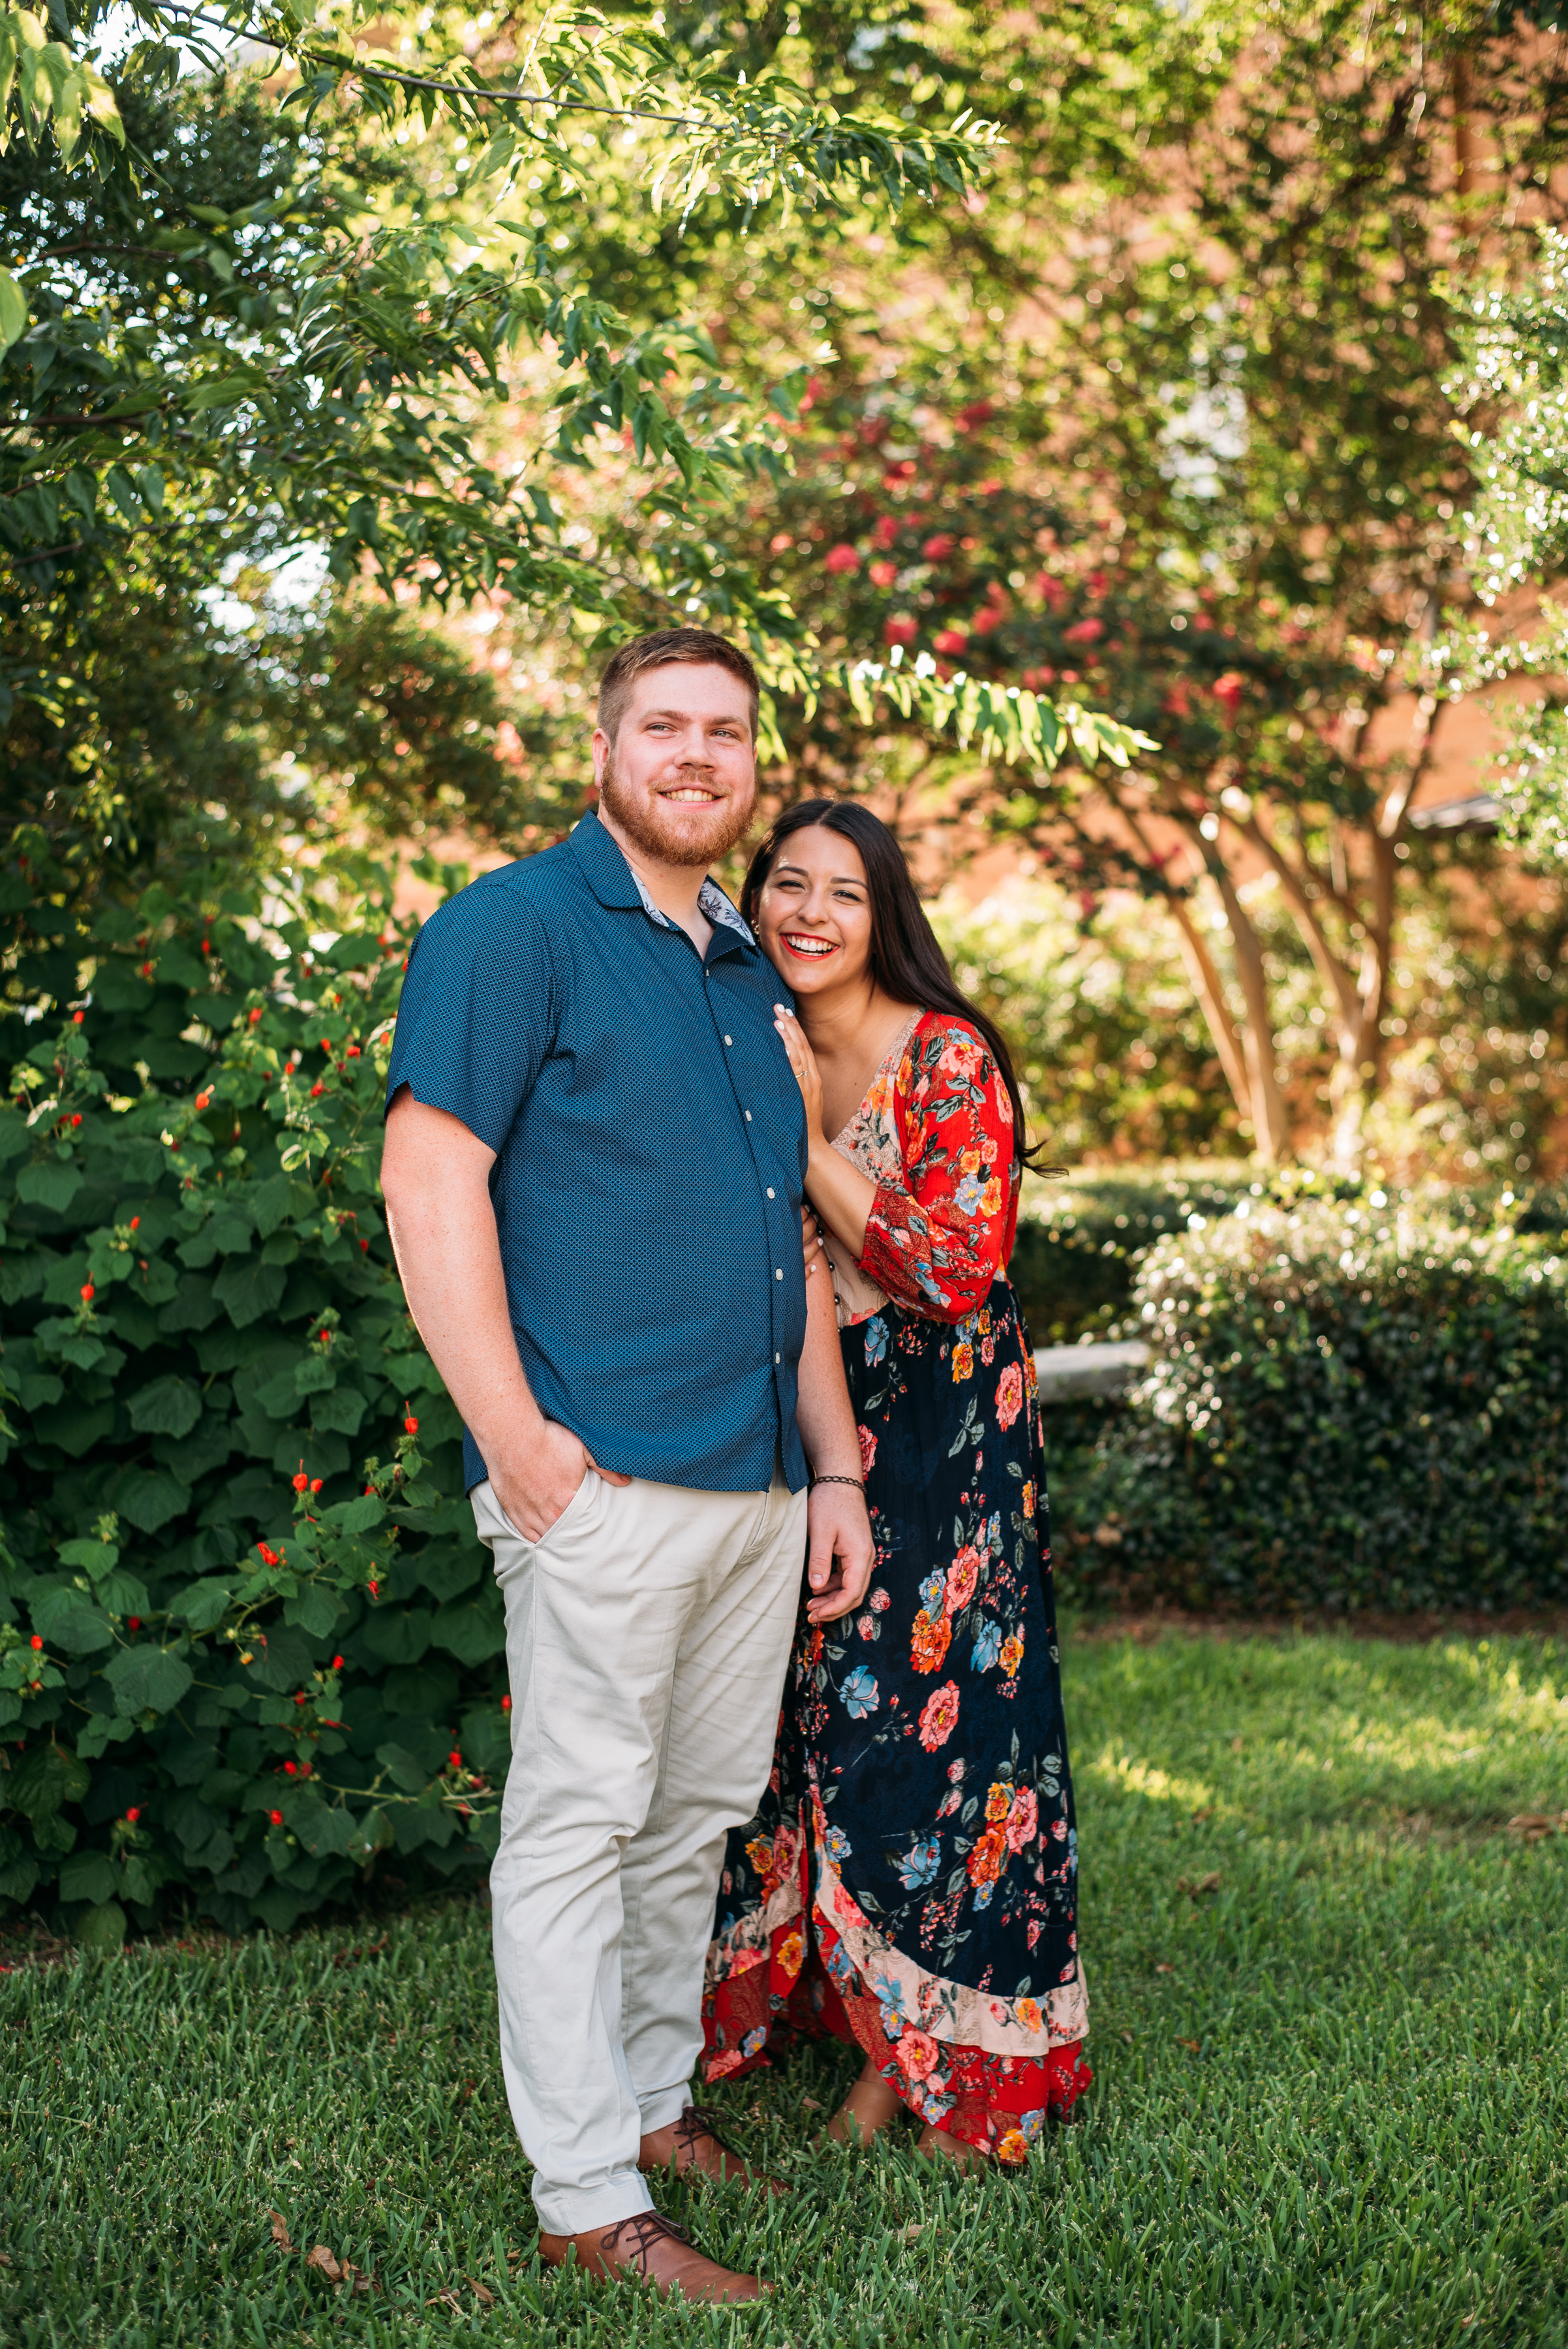 Downtown-Bryan-Engagement-George-Bush-Library-Texas-A&M-University-College-Station-Wedding-Photographer-San-Angel-Photo-Mark-Abigail-Jake-18.jpg